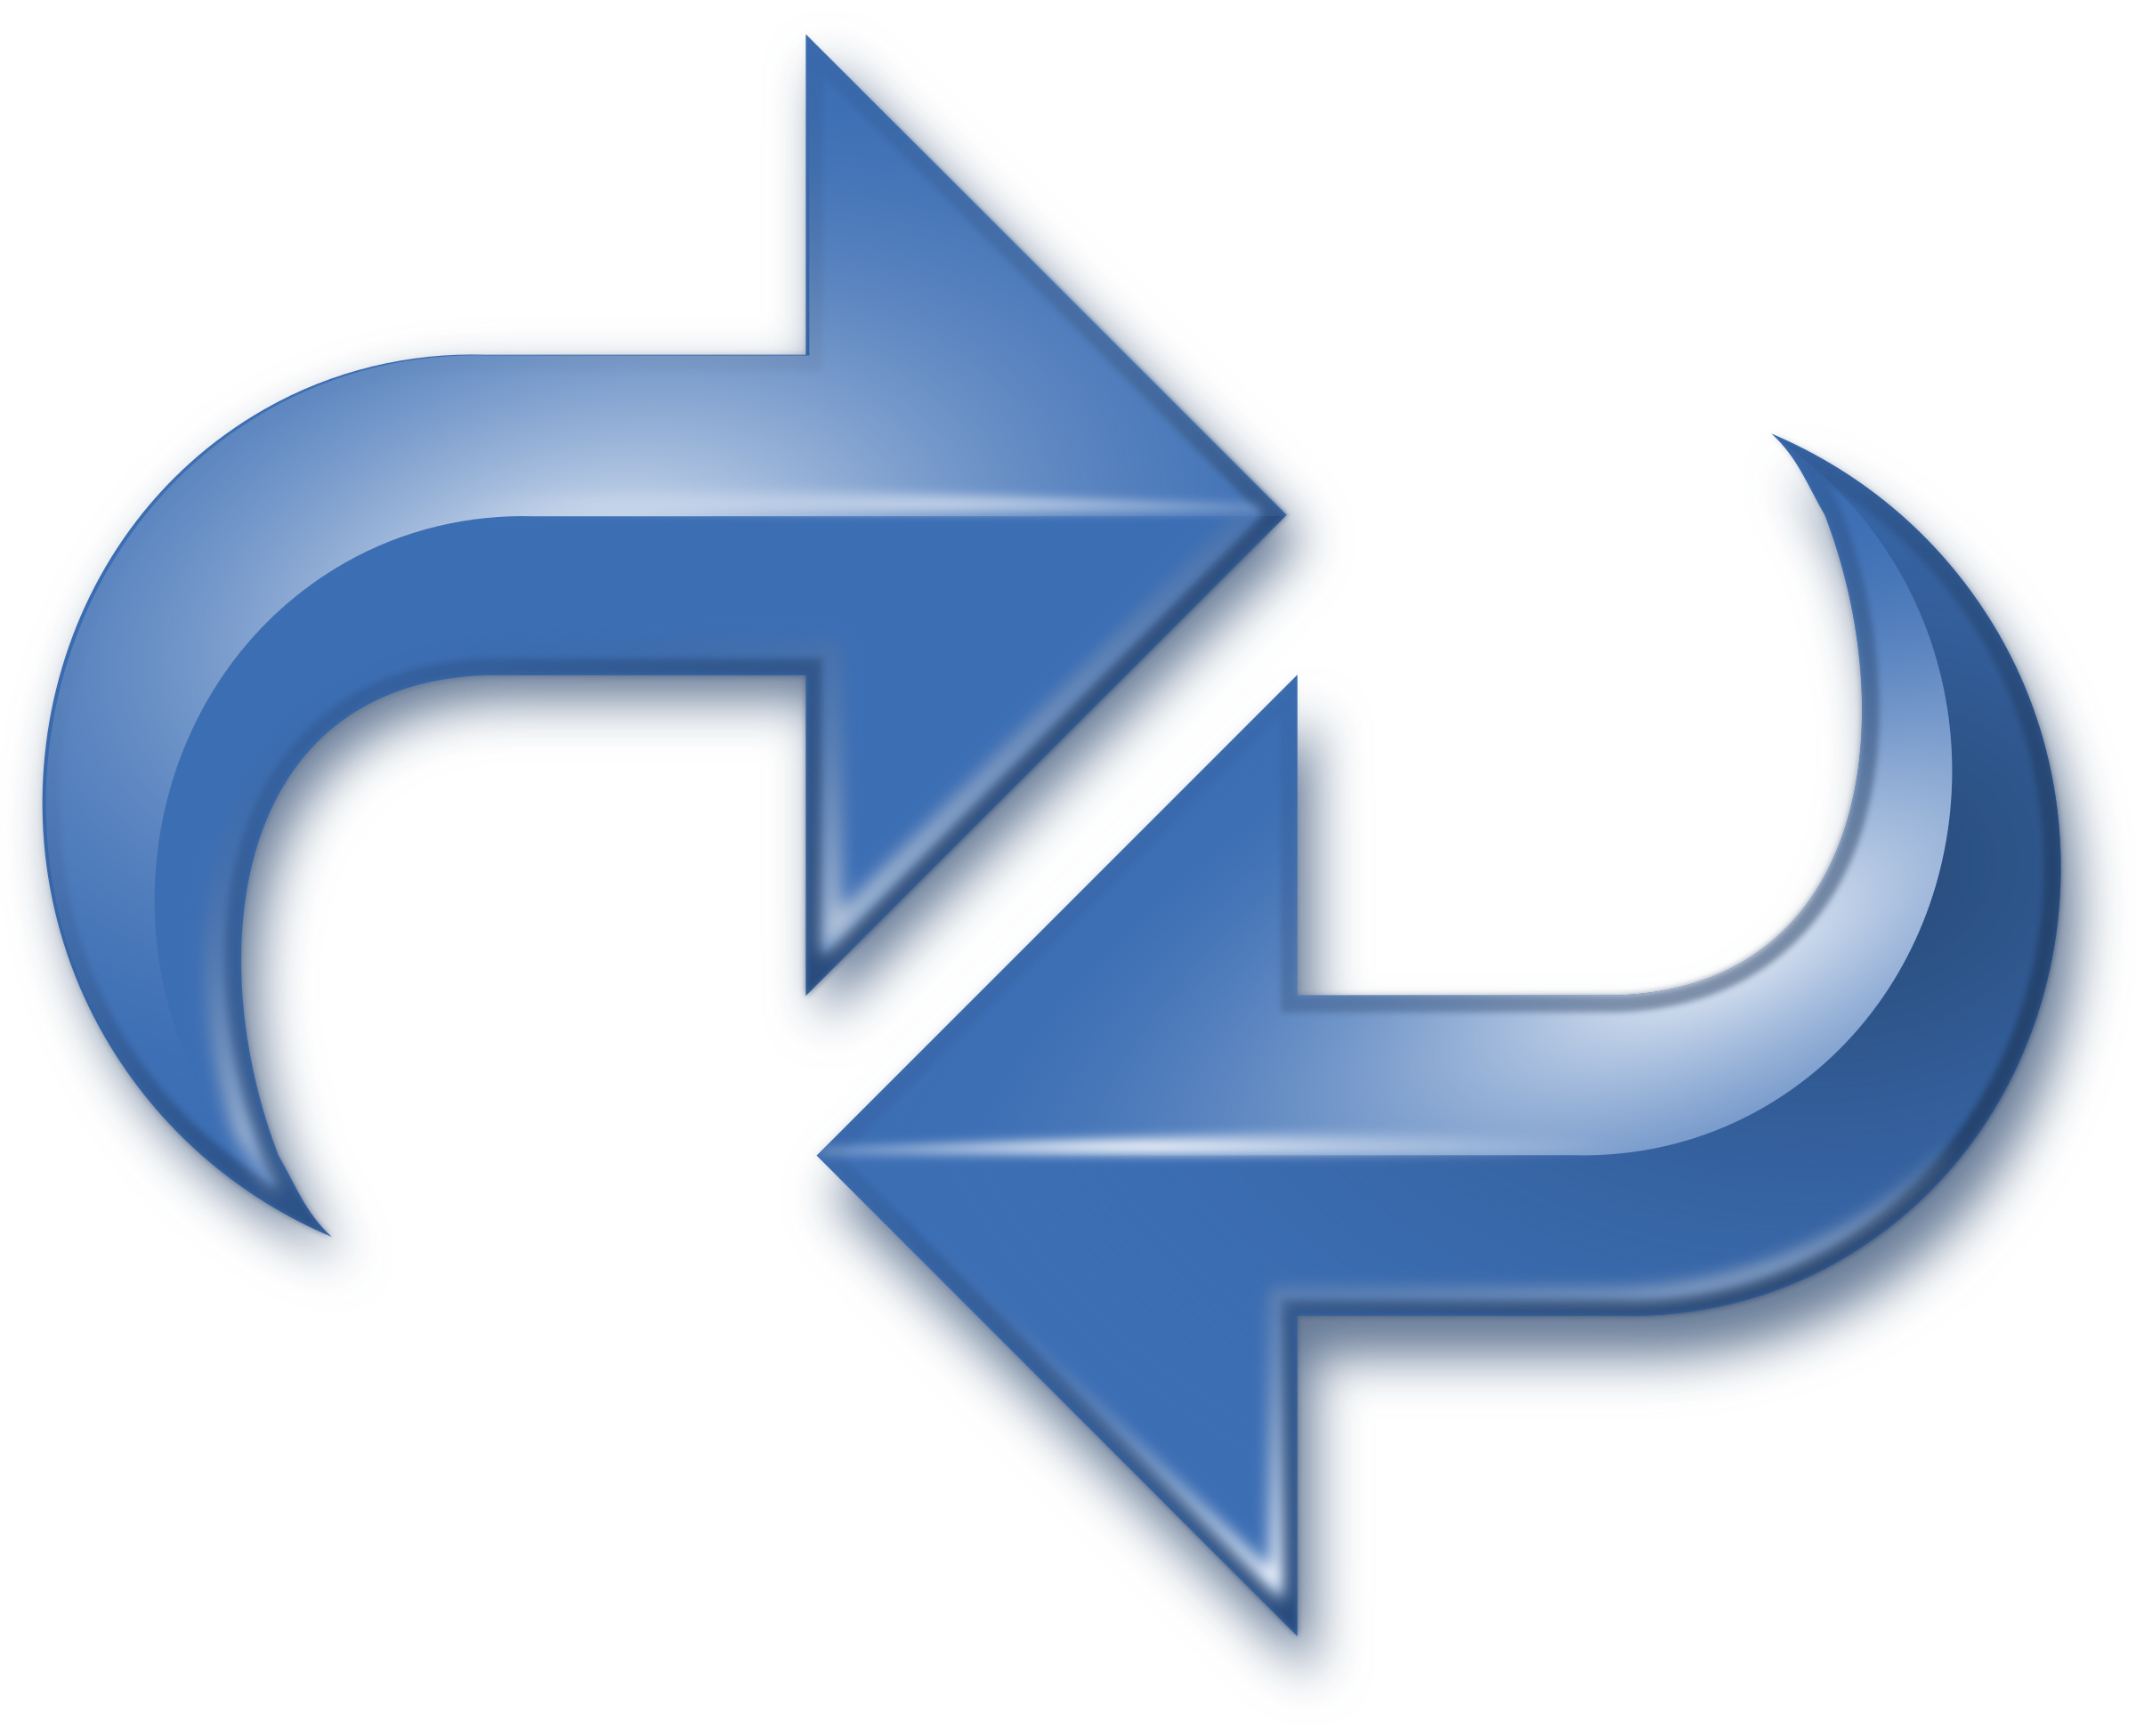 Reversed clipart Arrows Clipart Reversed Double Blue